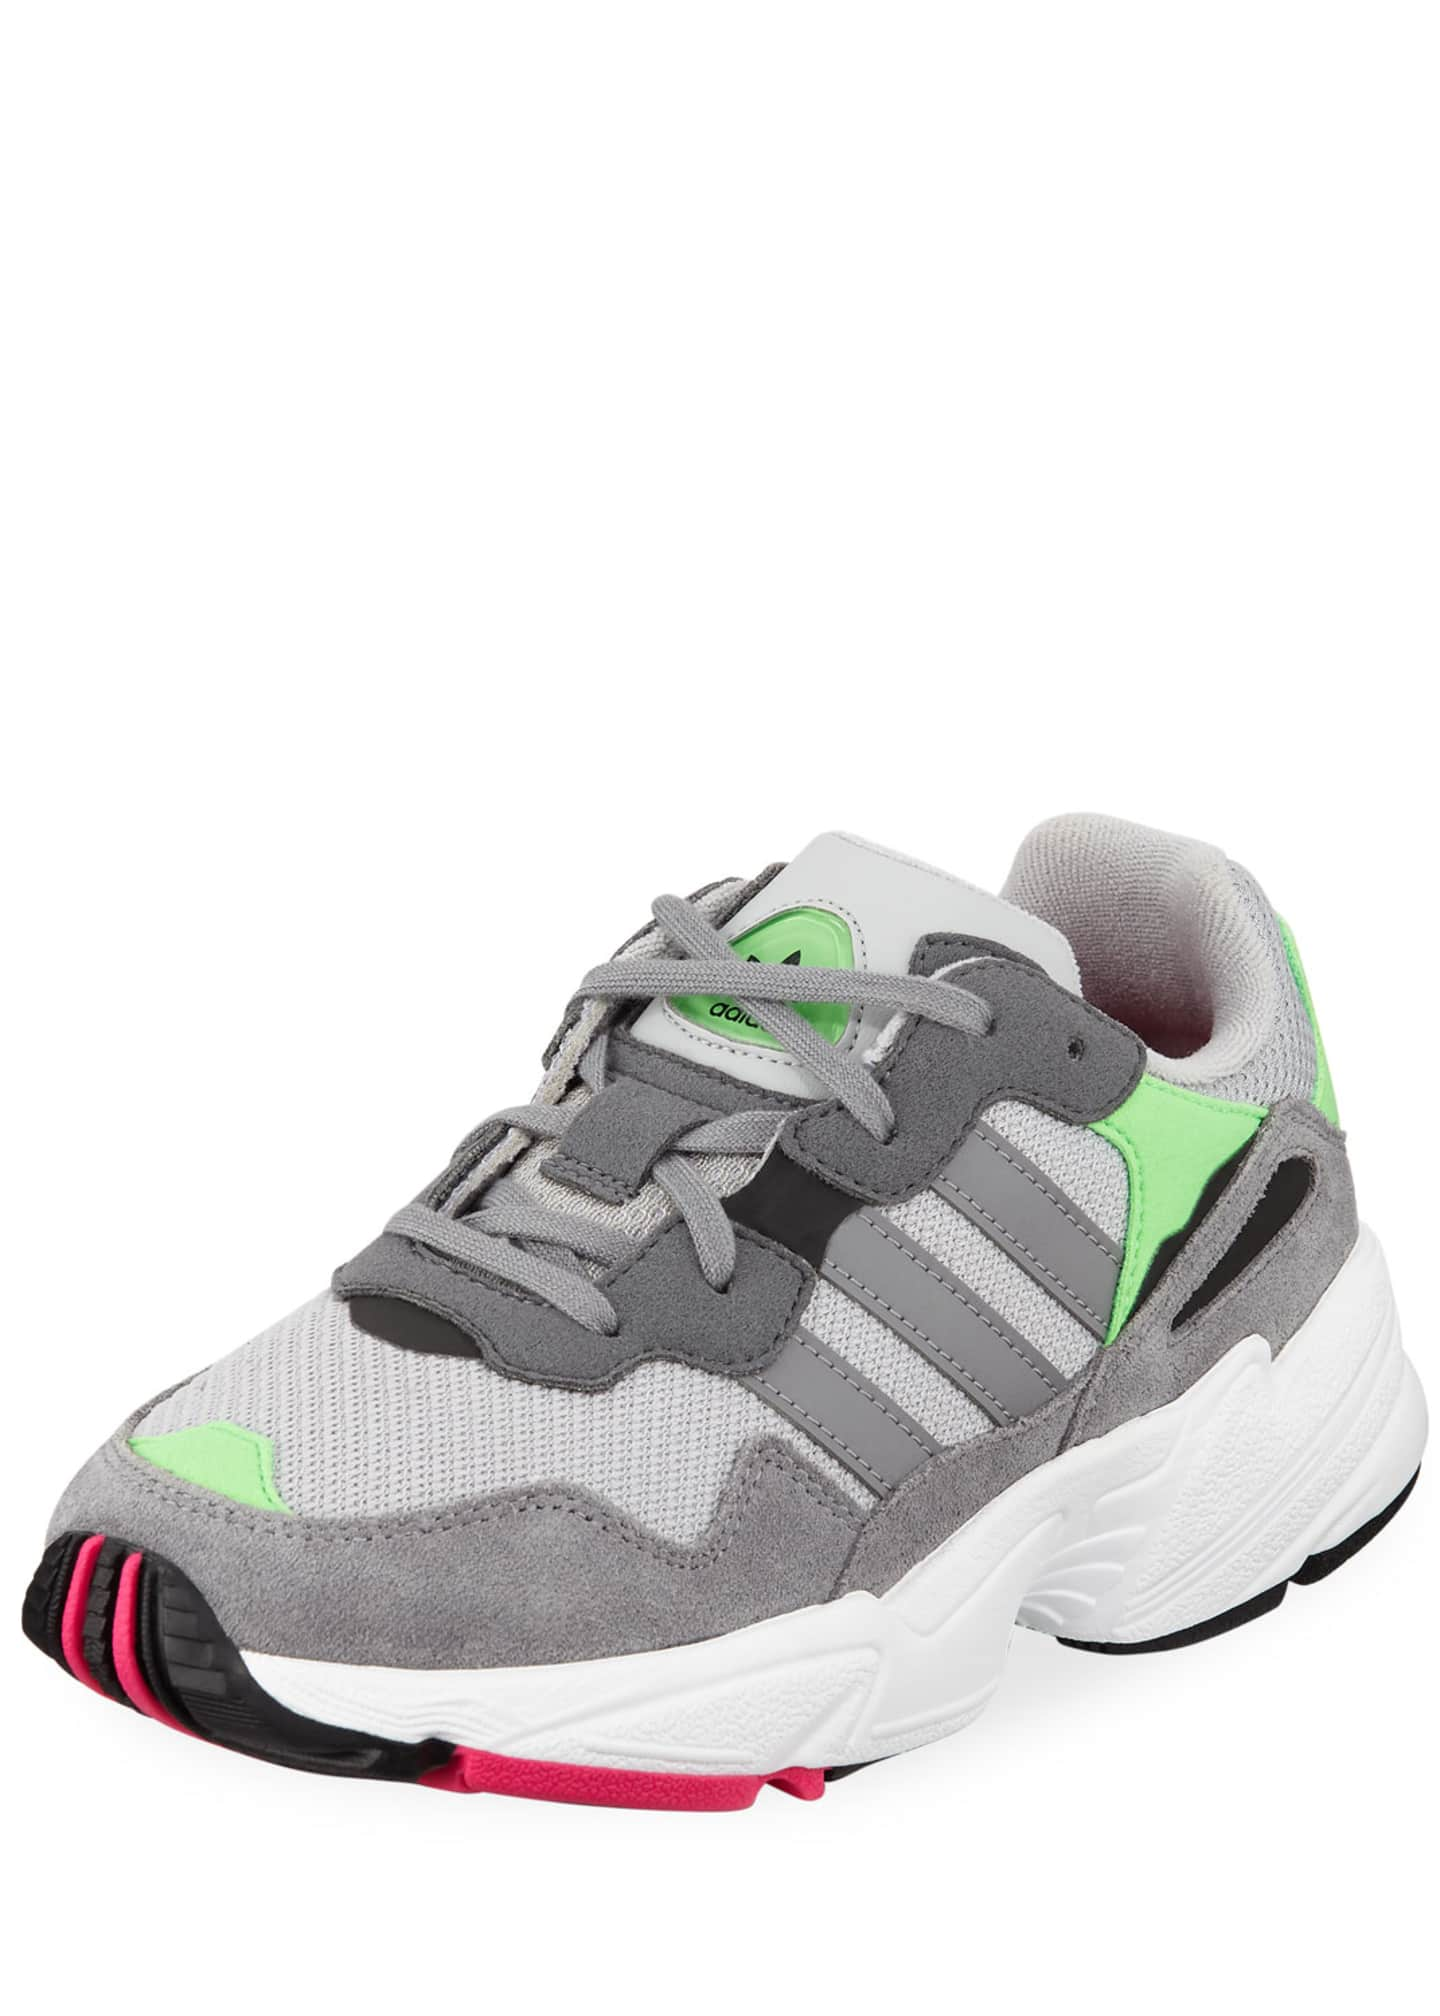 Adidas Yung-96 Colorblock Sneakers, Kids